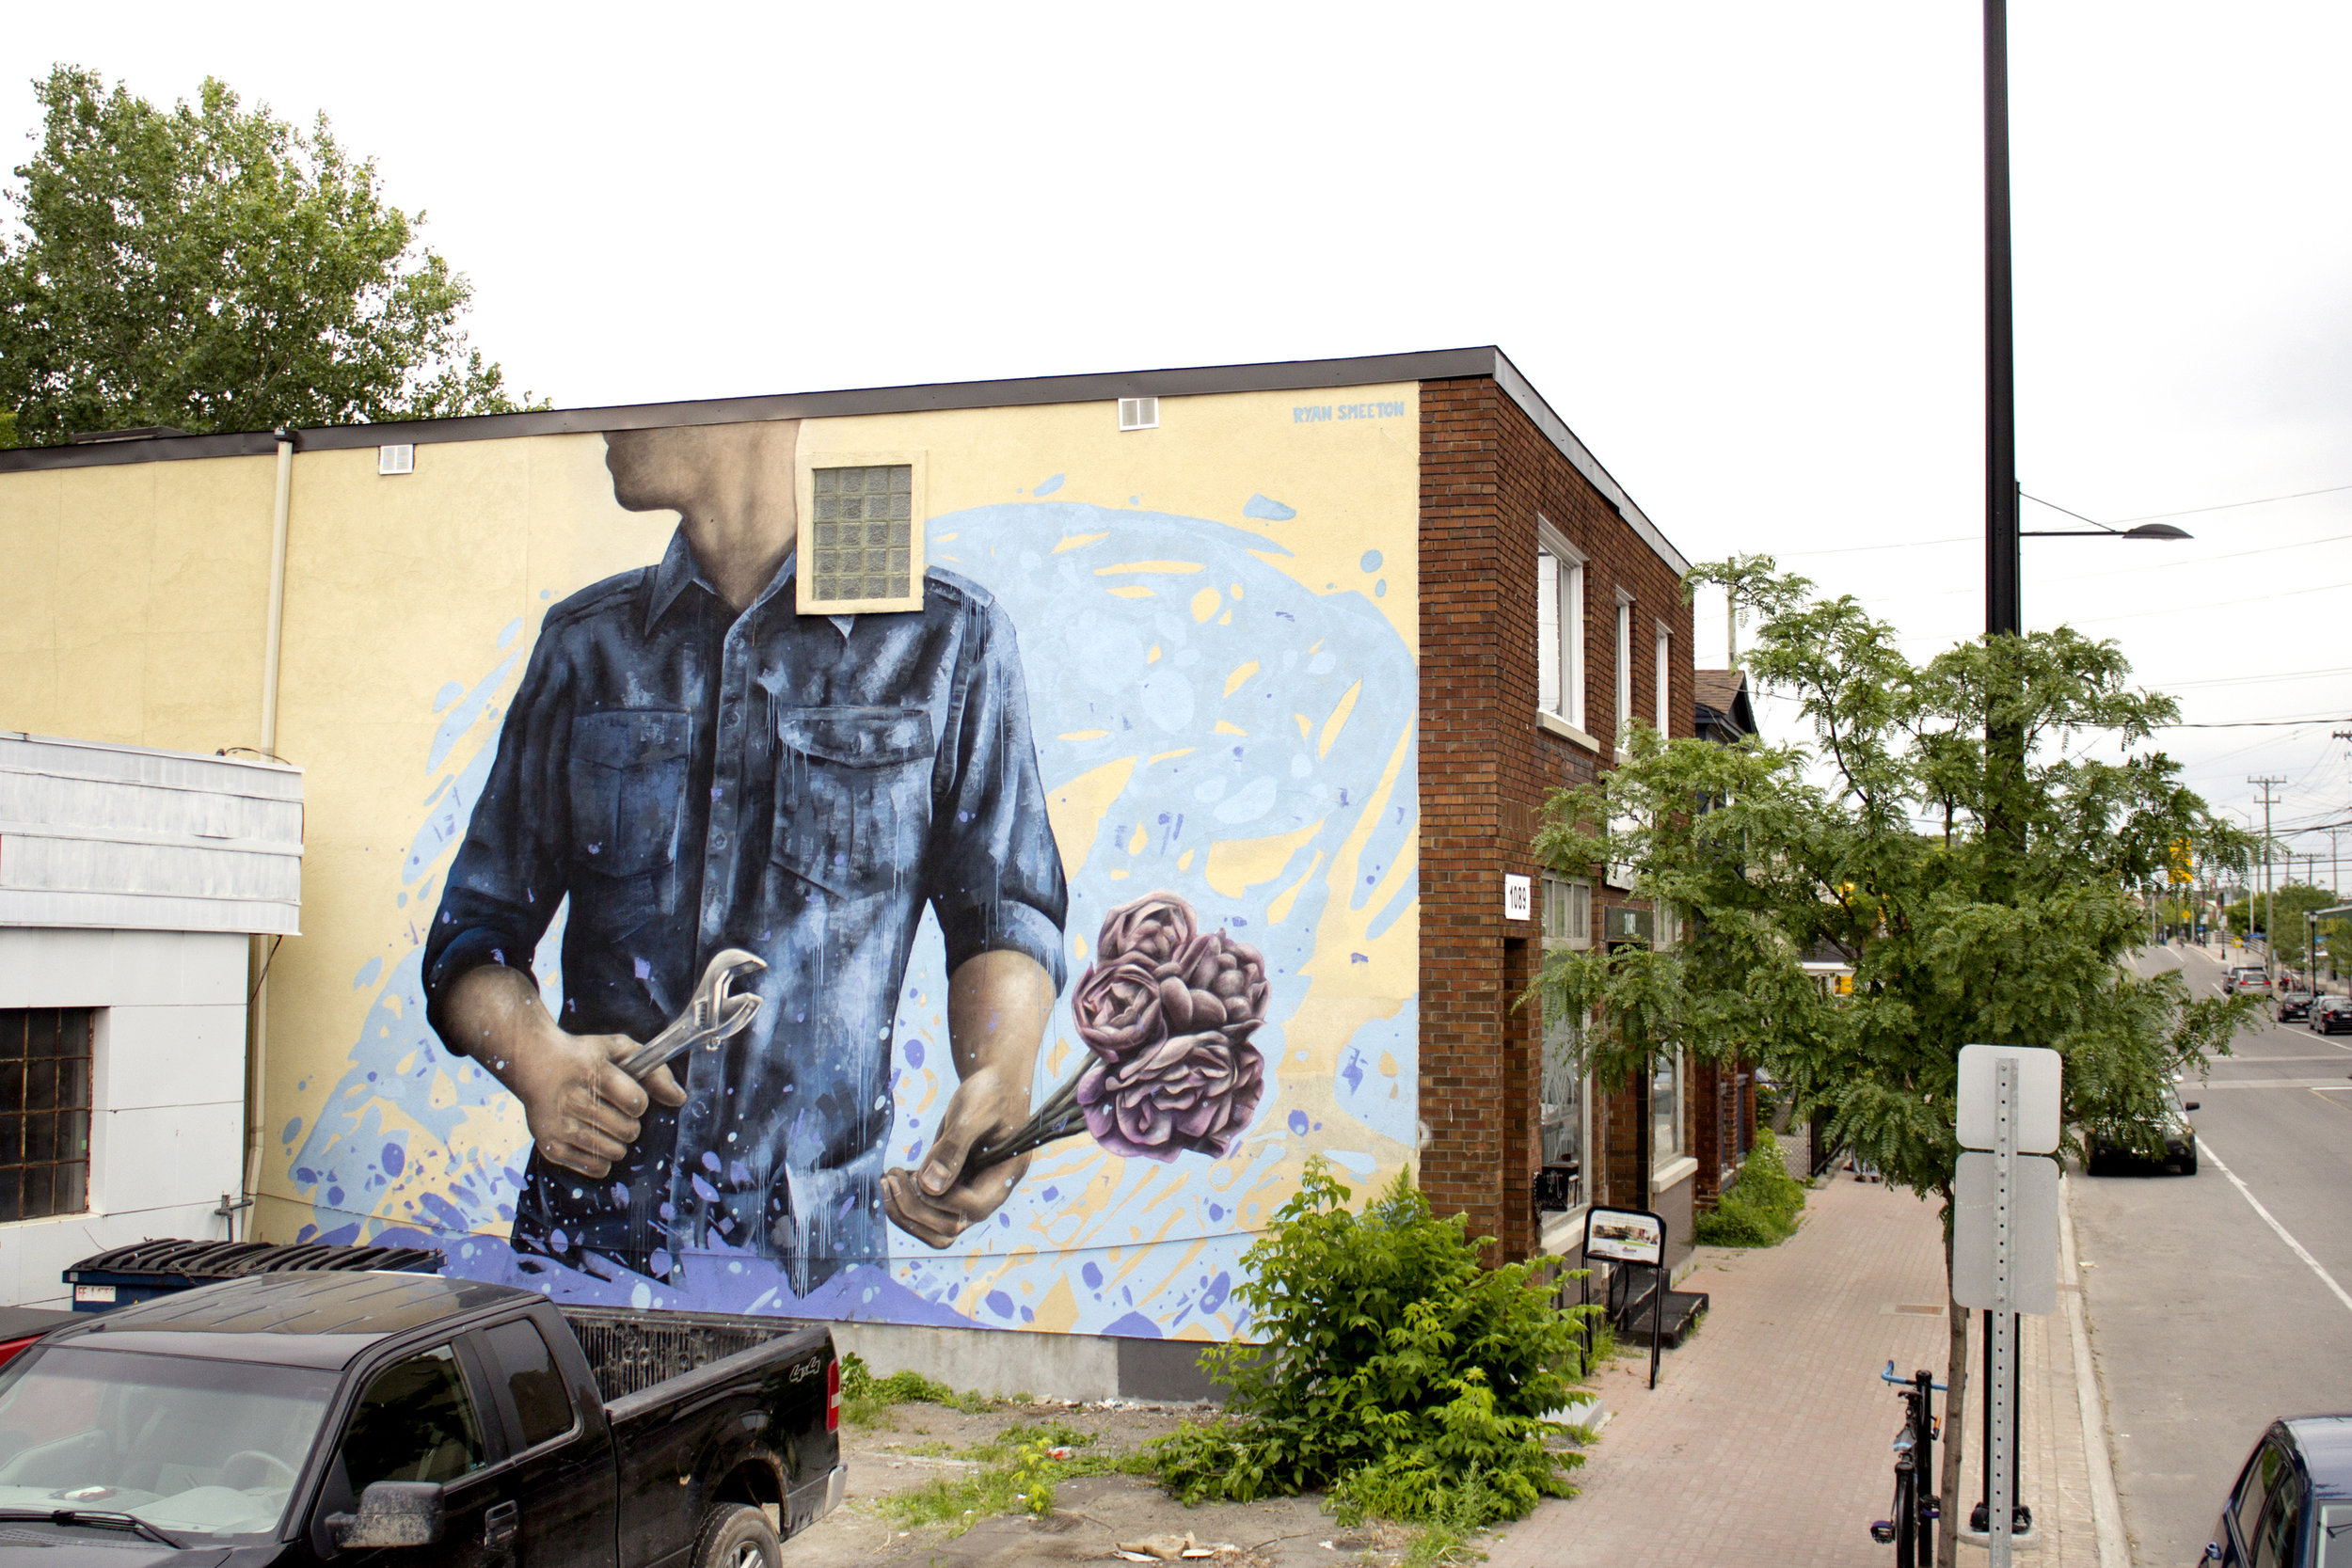 Ryan Smeeton_Untitled (Overview)_Mural for Wellington west BIA_2018.jpg